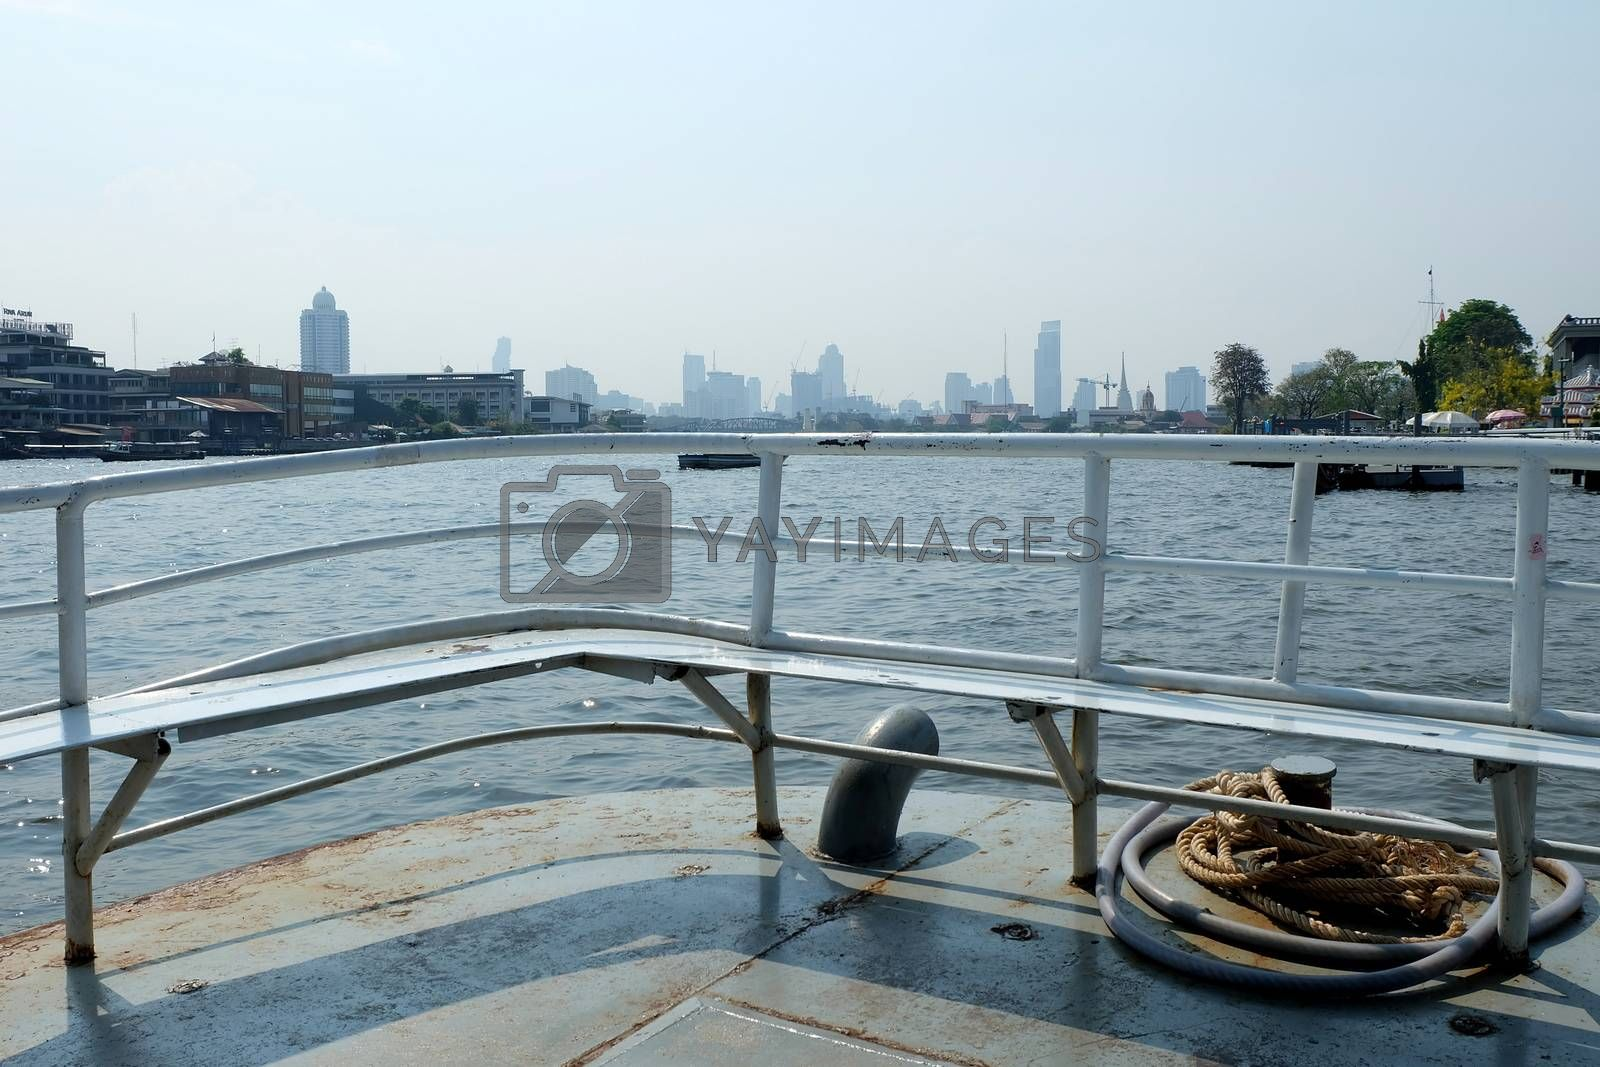 Scenery of Chaophraya River from local ferry. Chaophraya River is the major river in Thailand.